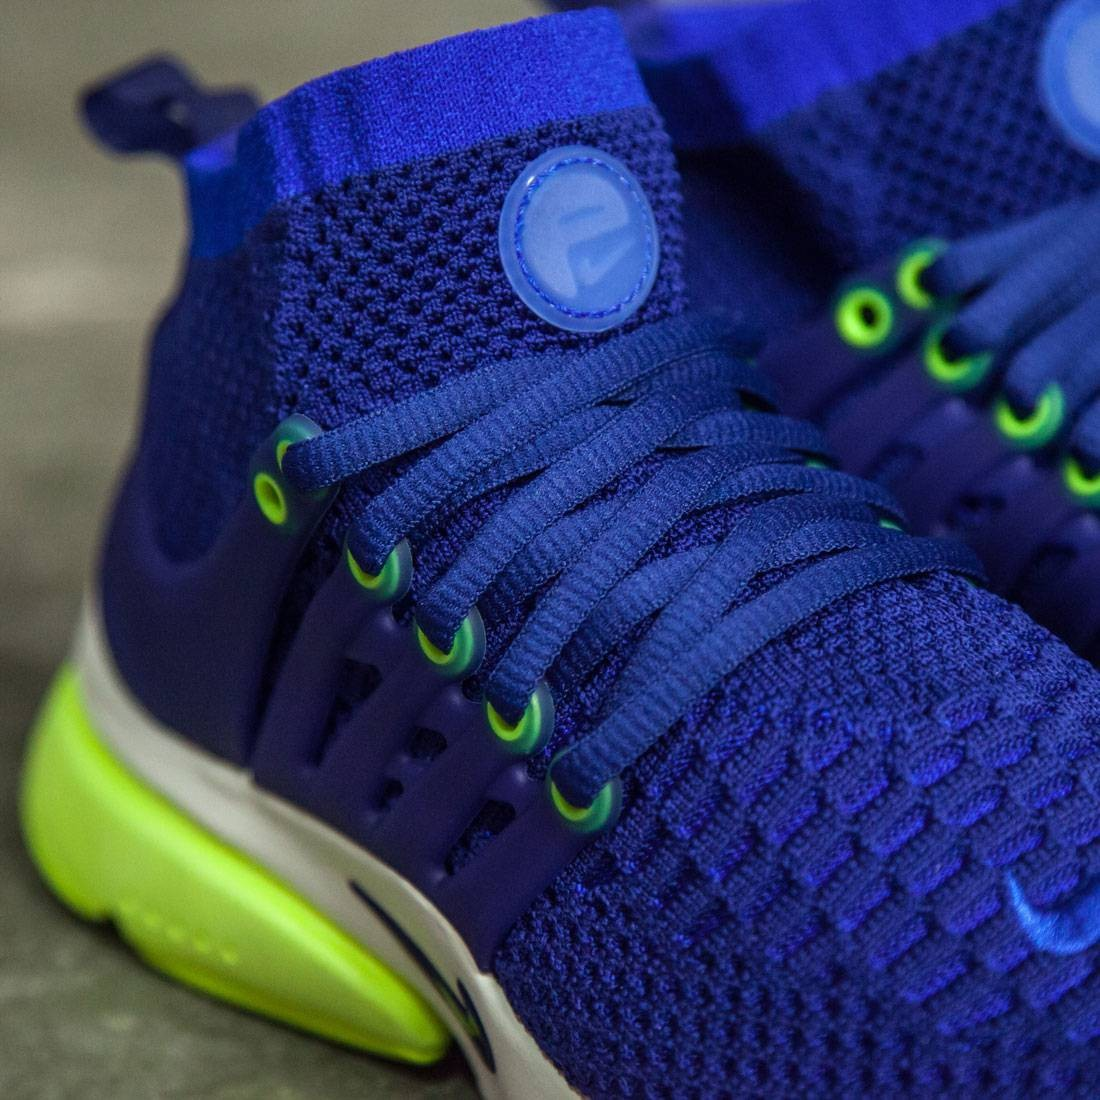 7b5806b617e2b Nike Women Women'S Nike Air Presto Flyknit Ultra Shoe (deep royal blue /  racer blue-volt)